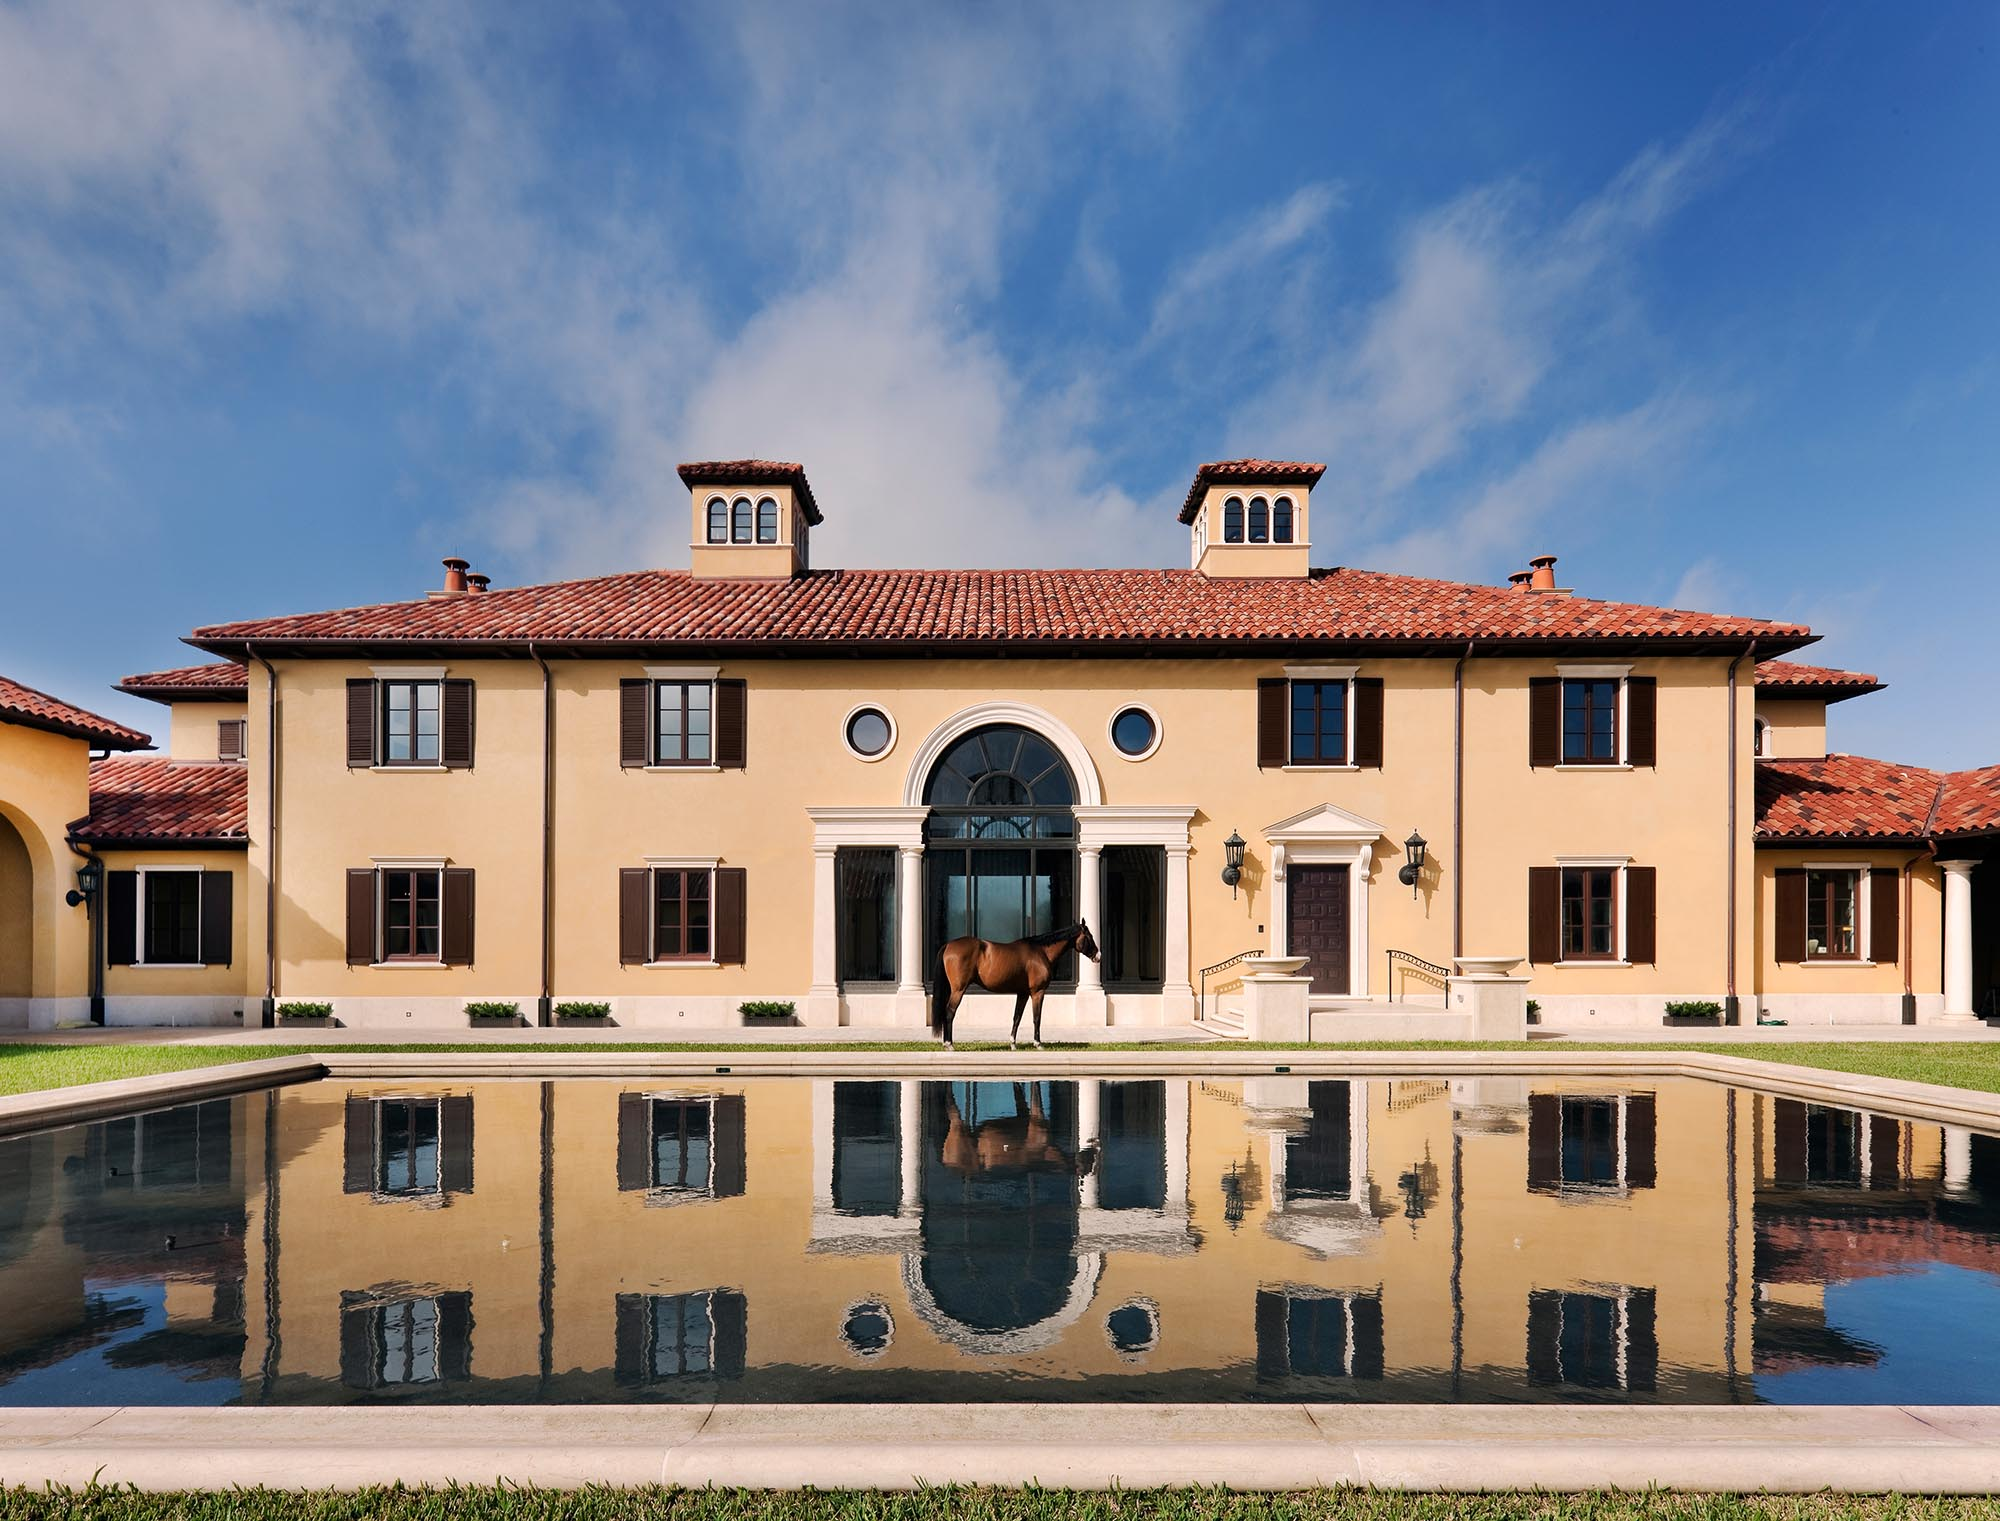 Wellington Florida, reflecting pool with horse, Mediterranean style, Spanish style, Palladian, clay terracotta roof tile, stucco